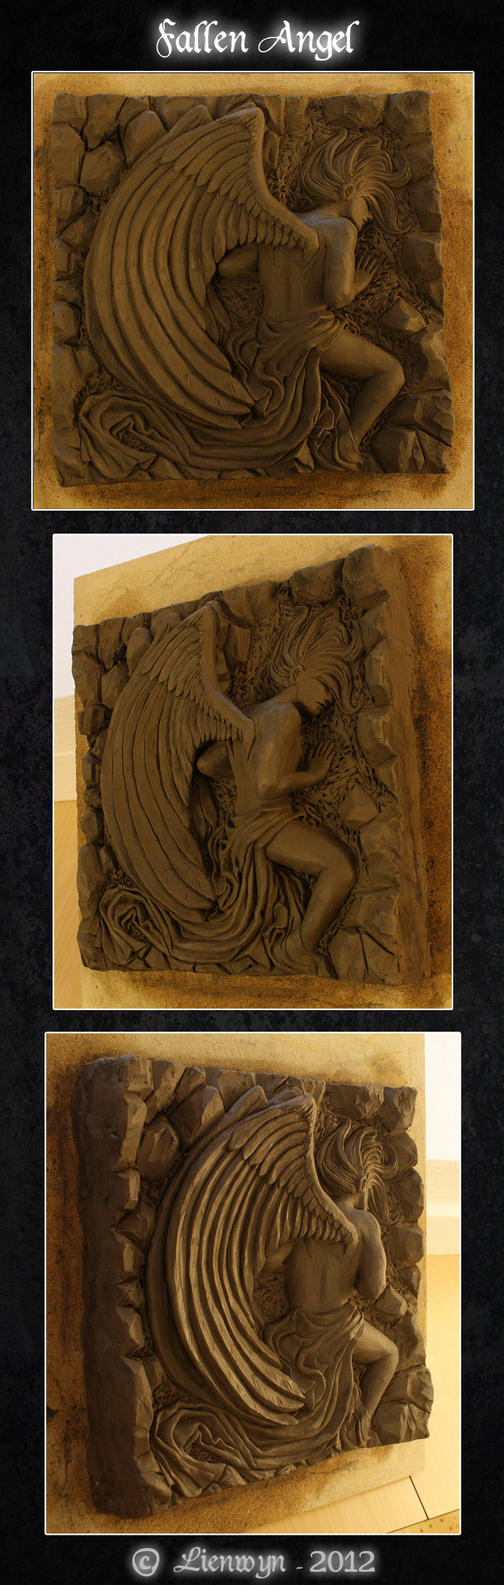 Fallen Angel Relief by Lienwyn